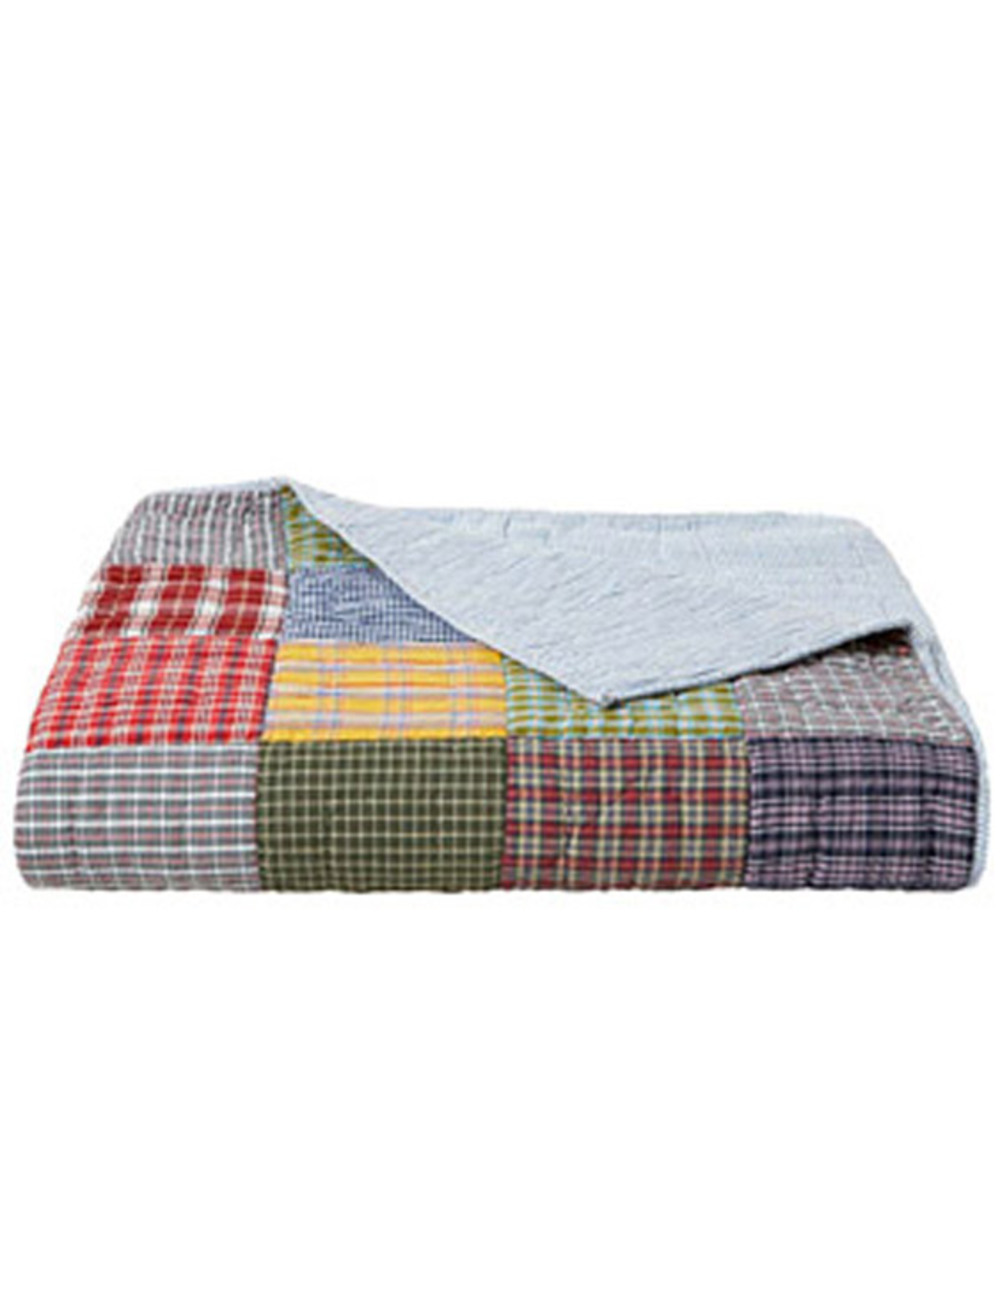 Amity Imports - Caftan King Quilt